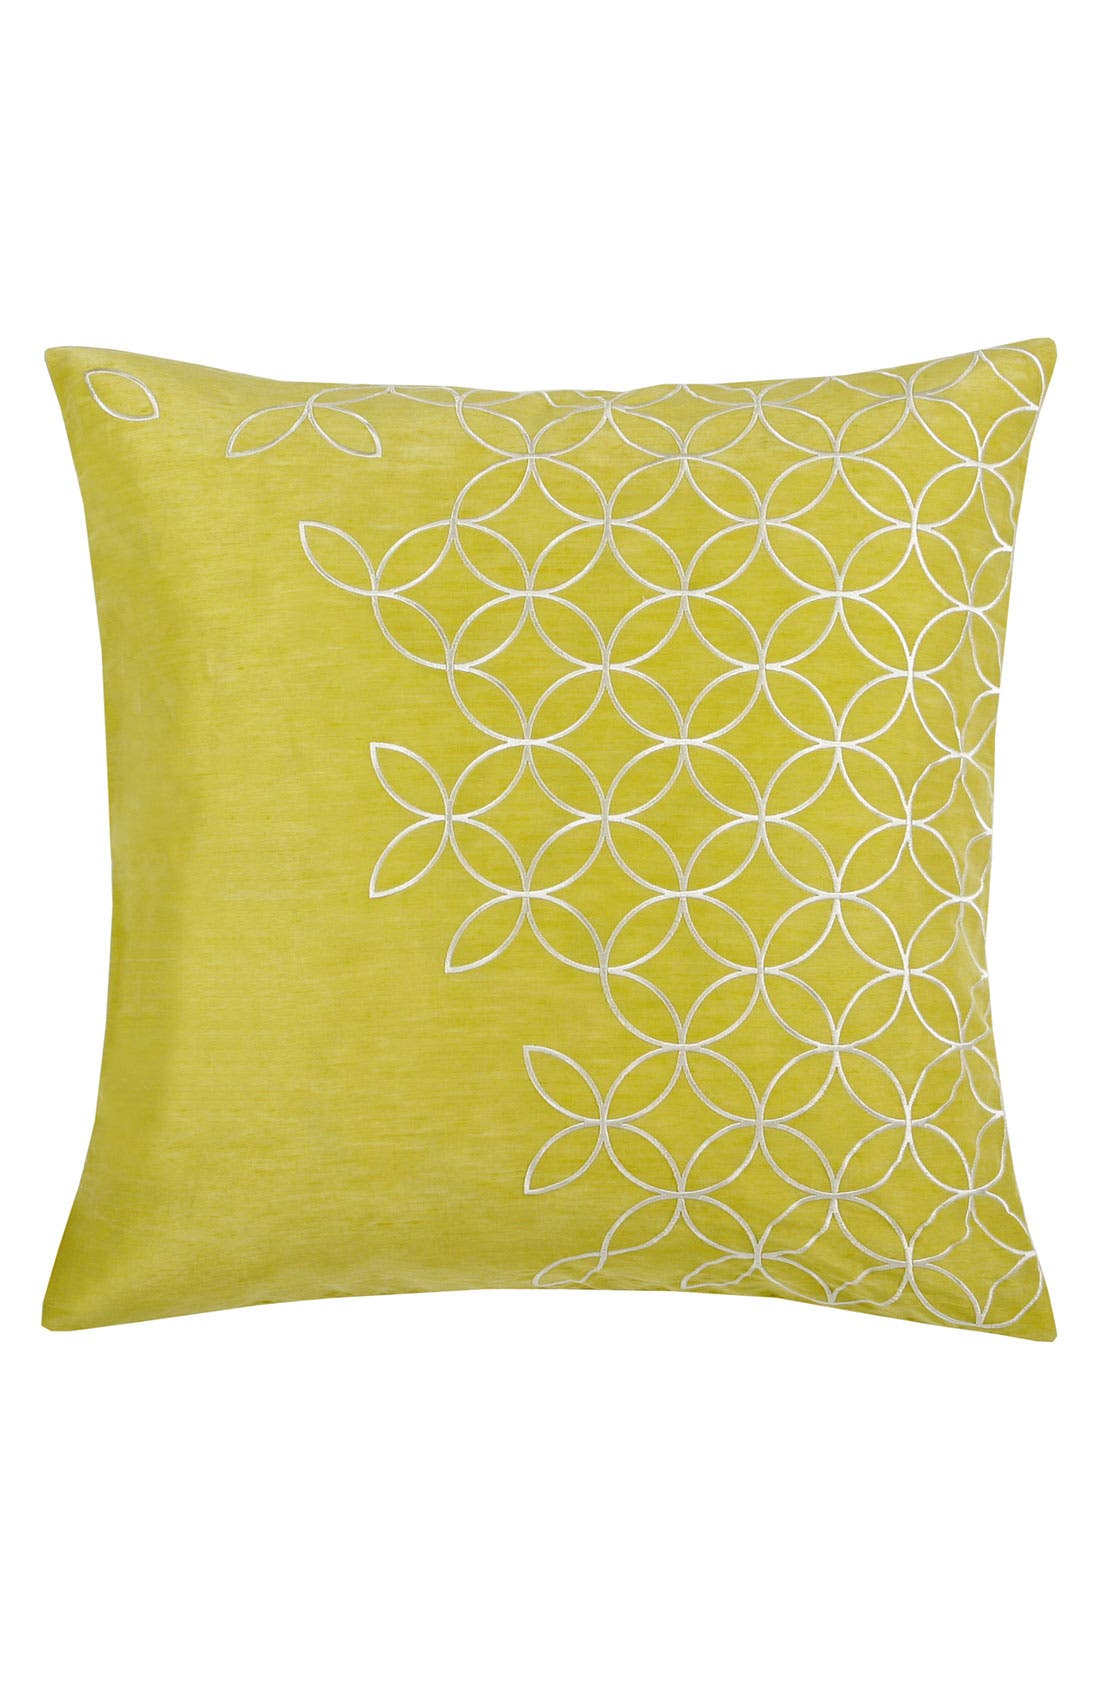 Main Image - Blissliving Home 'Latham' Pillow